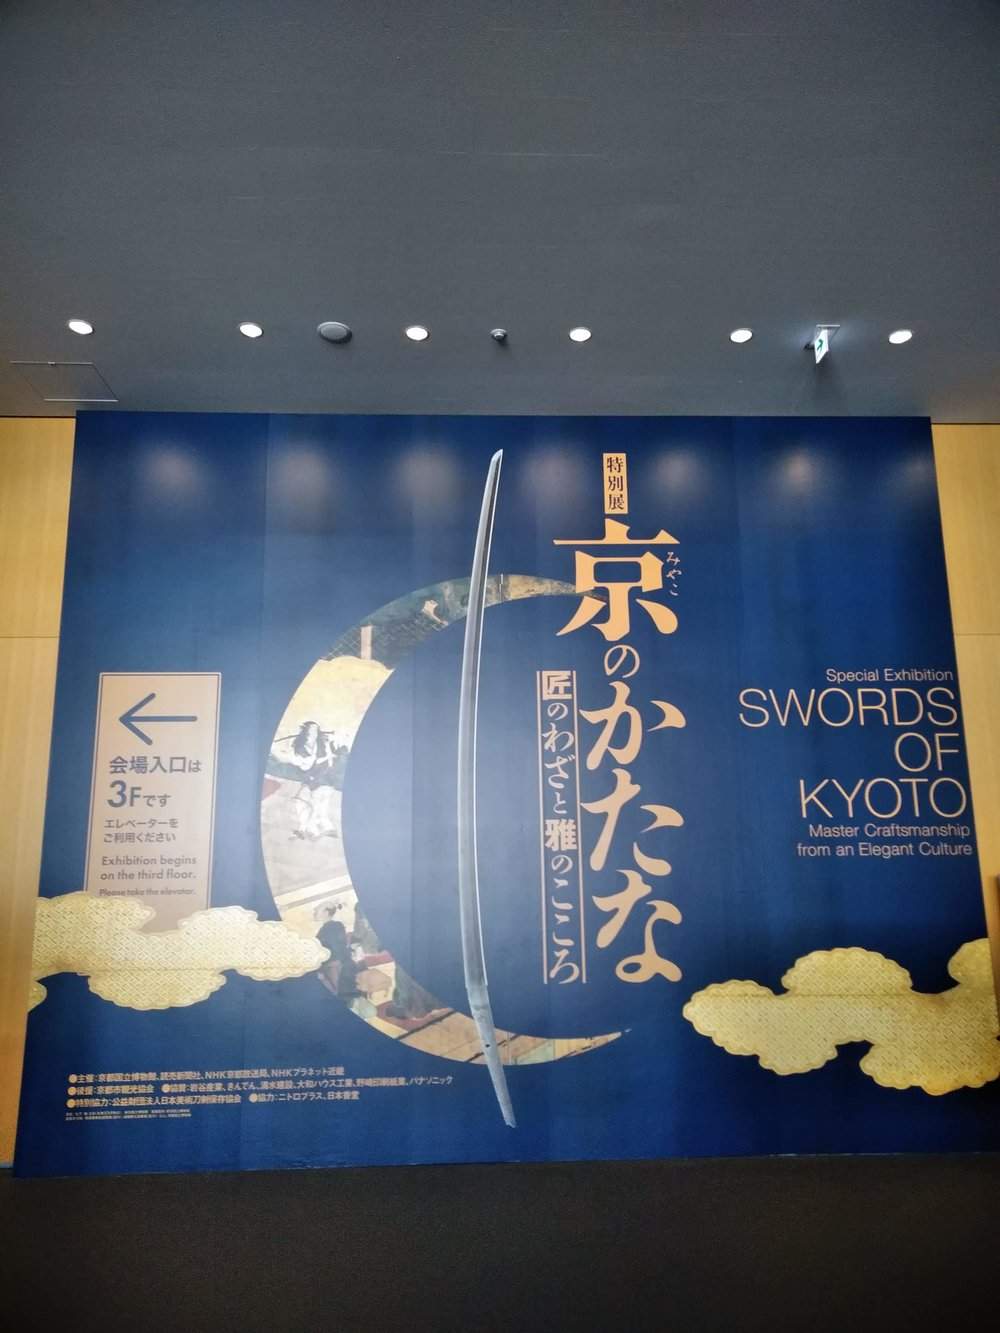 Swords of Kyoto